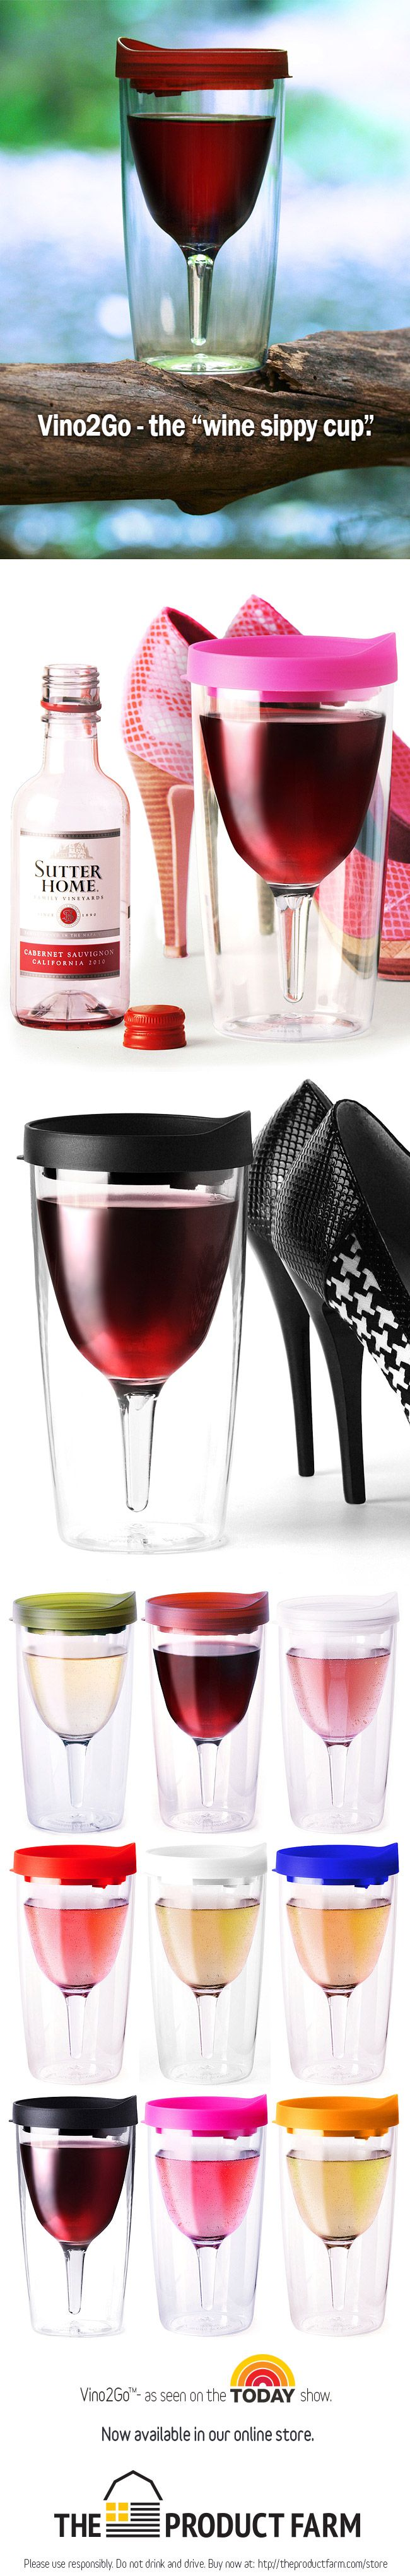 "Vino2Go™ - the ""Wine Sippy Cup"" as seen on the TODAY show."